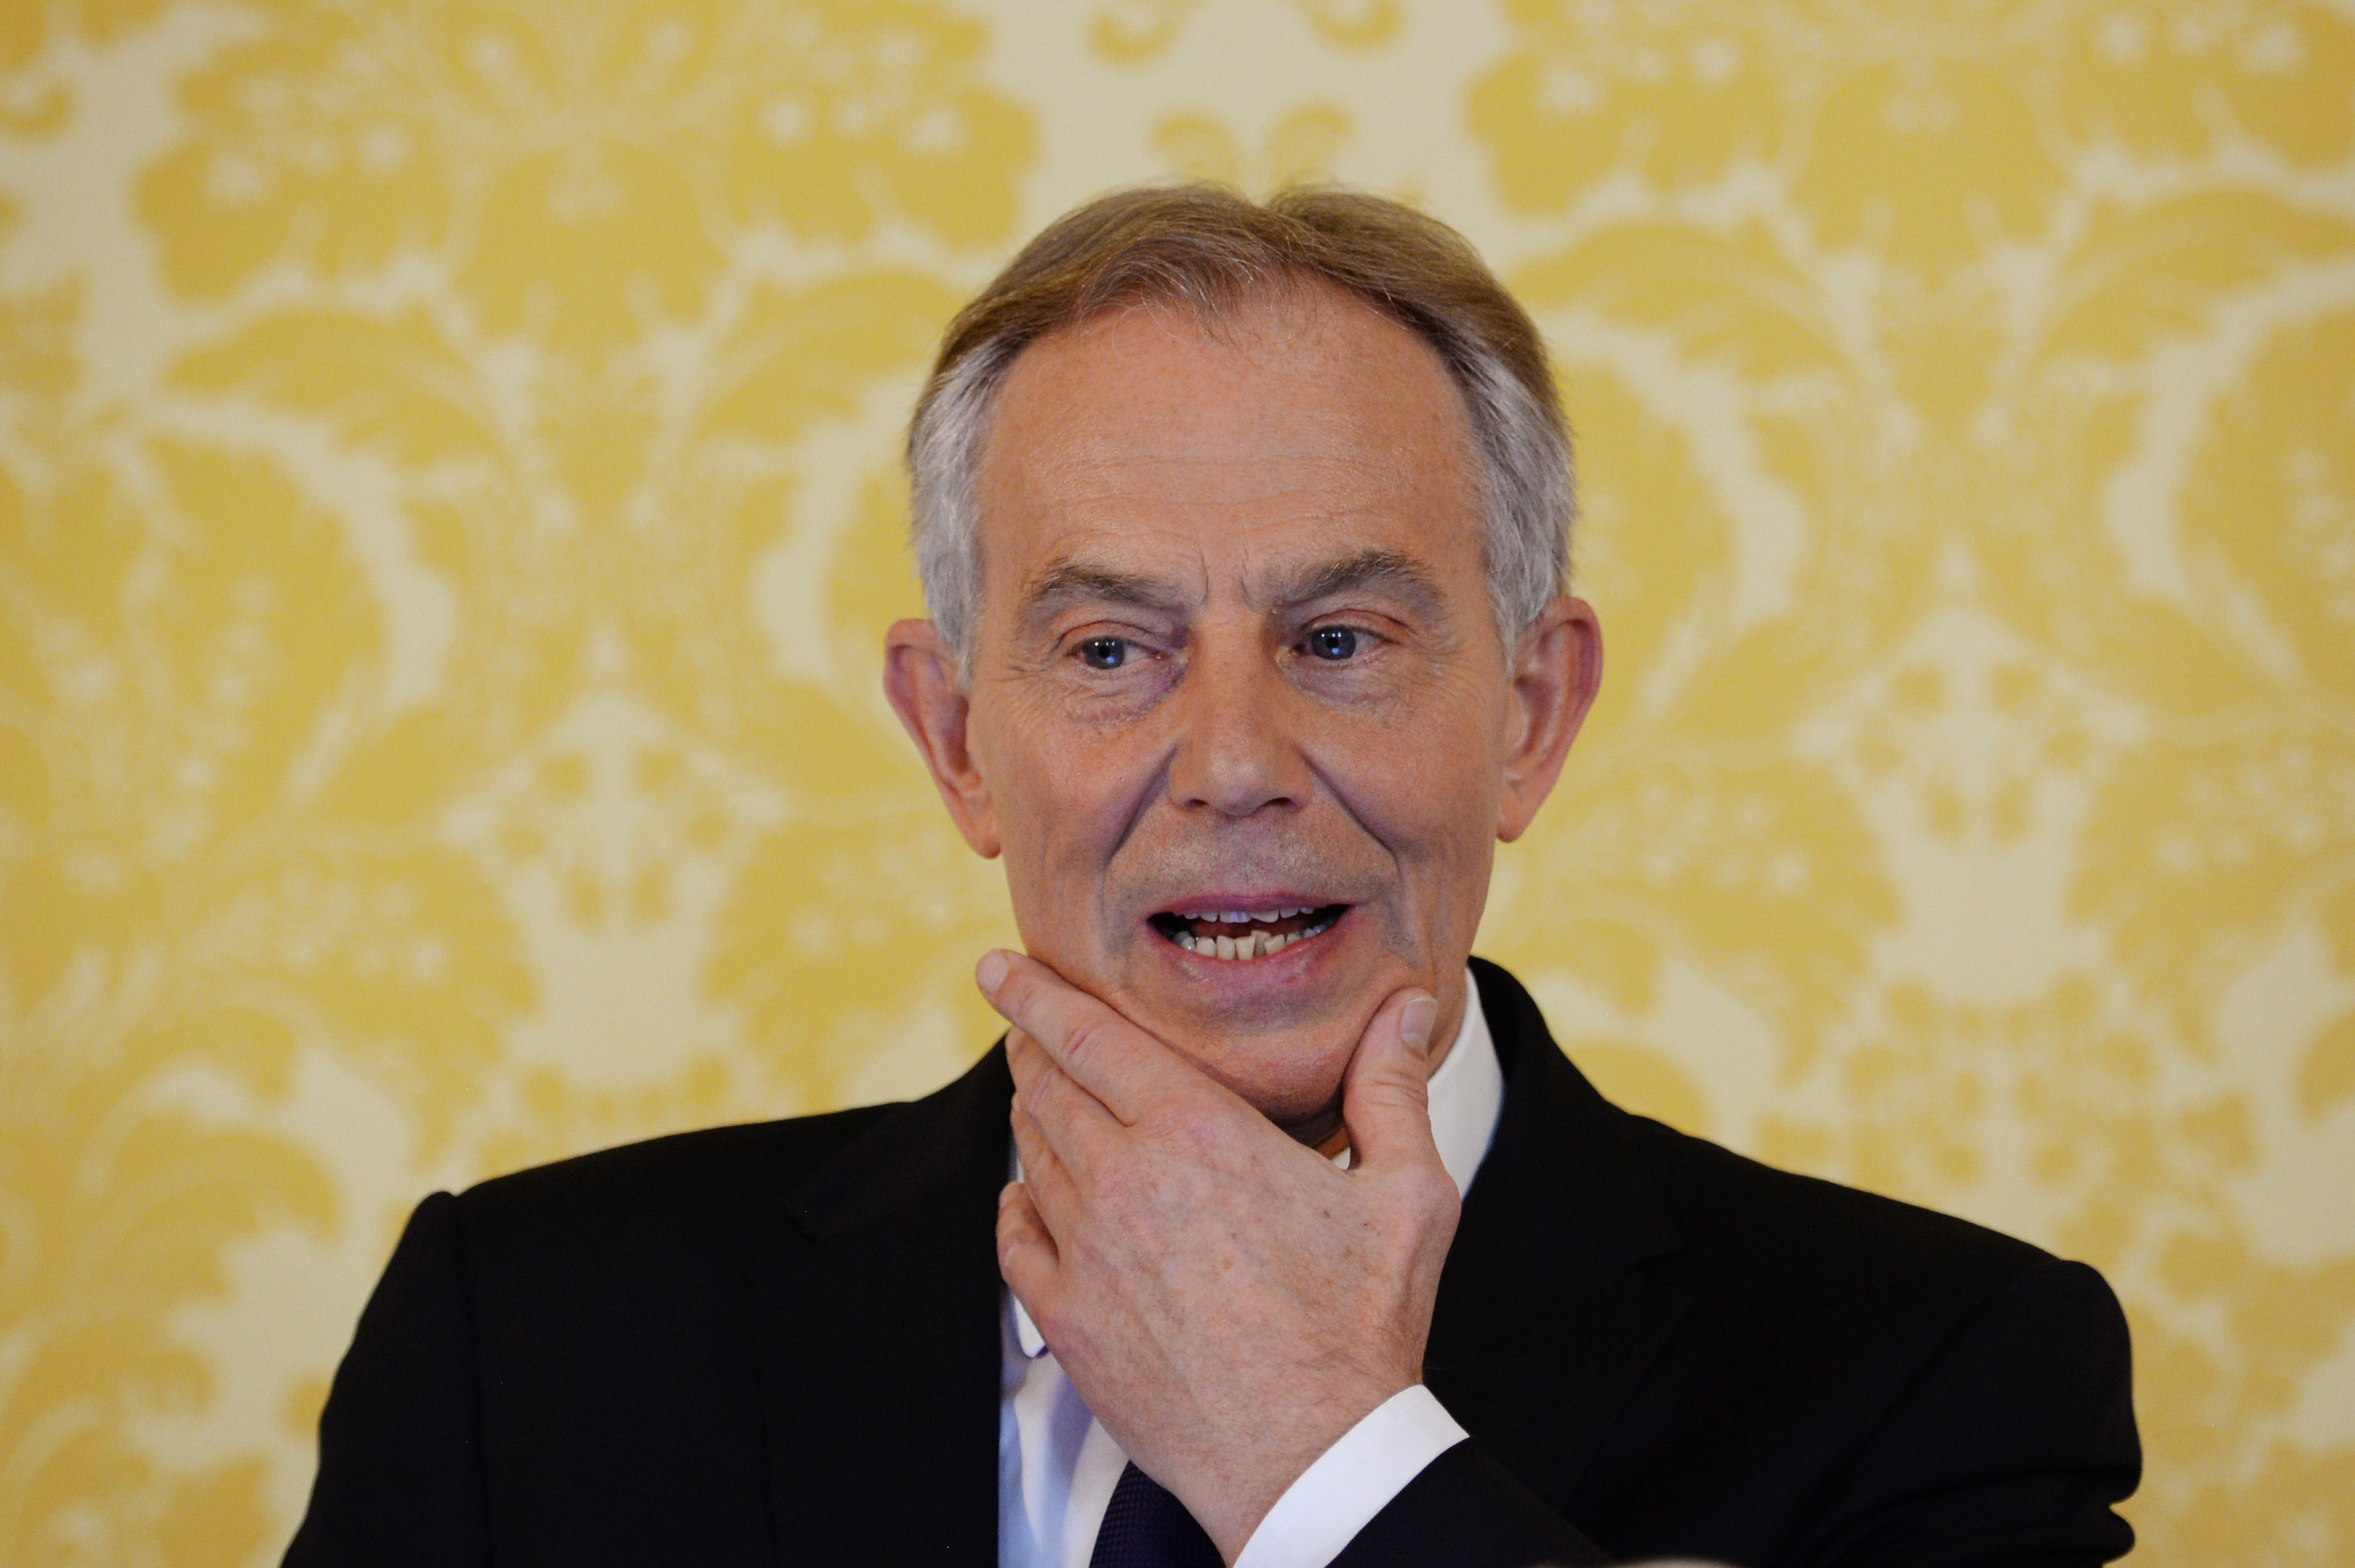 Tony Blair during his Chilcot Iraq inquiry response statement (Stefan Rousseau - WPA Pool/Getty Images)